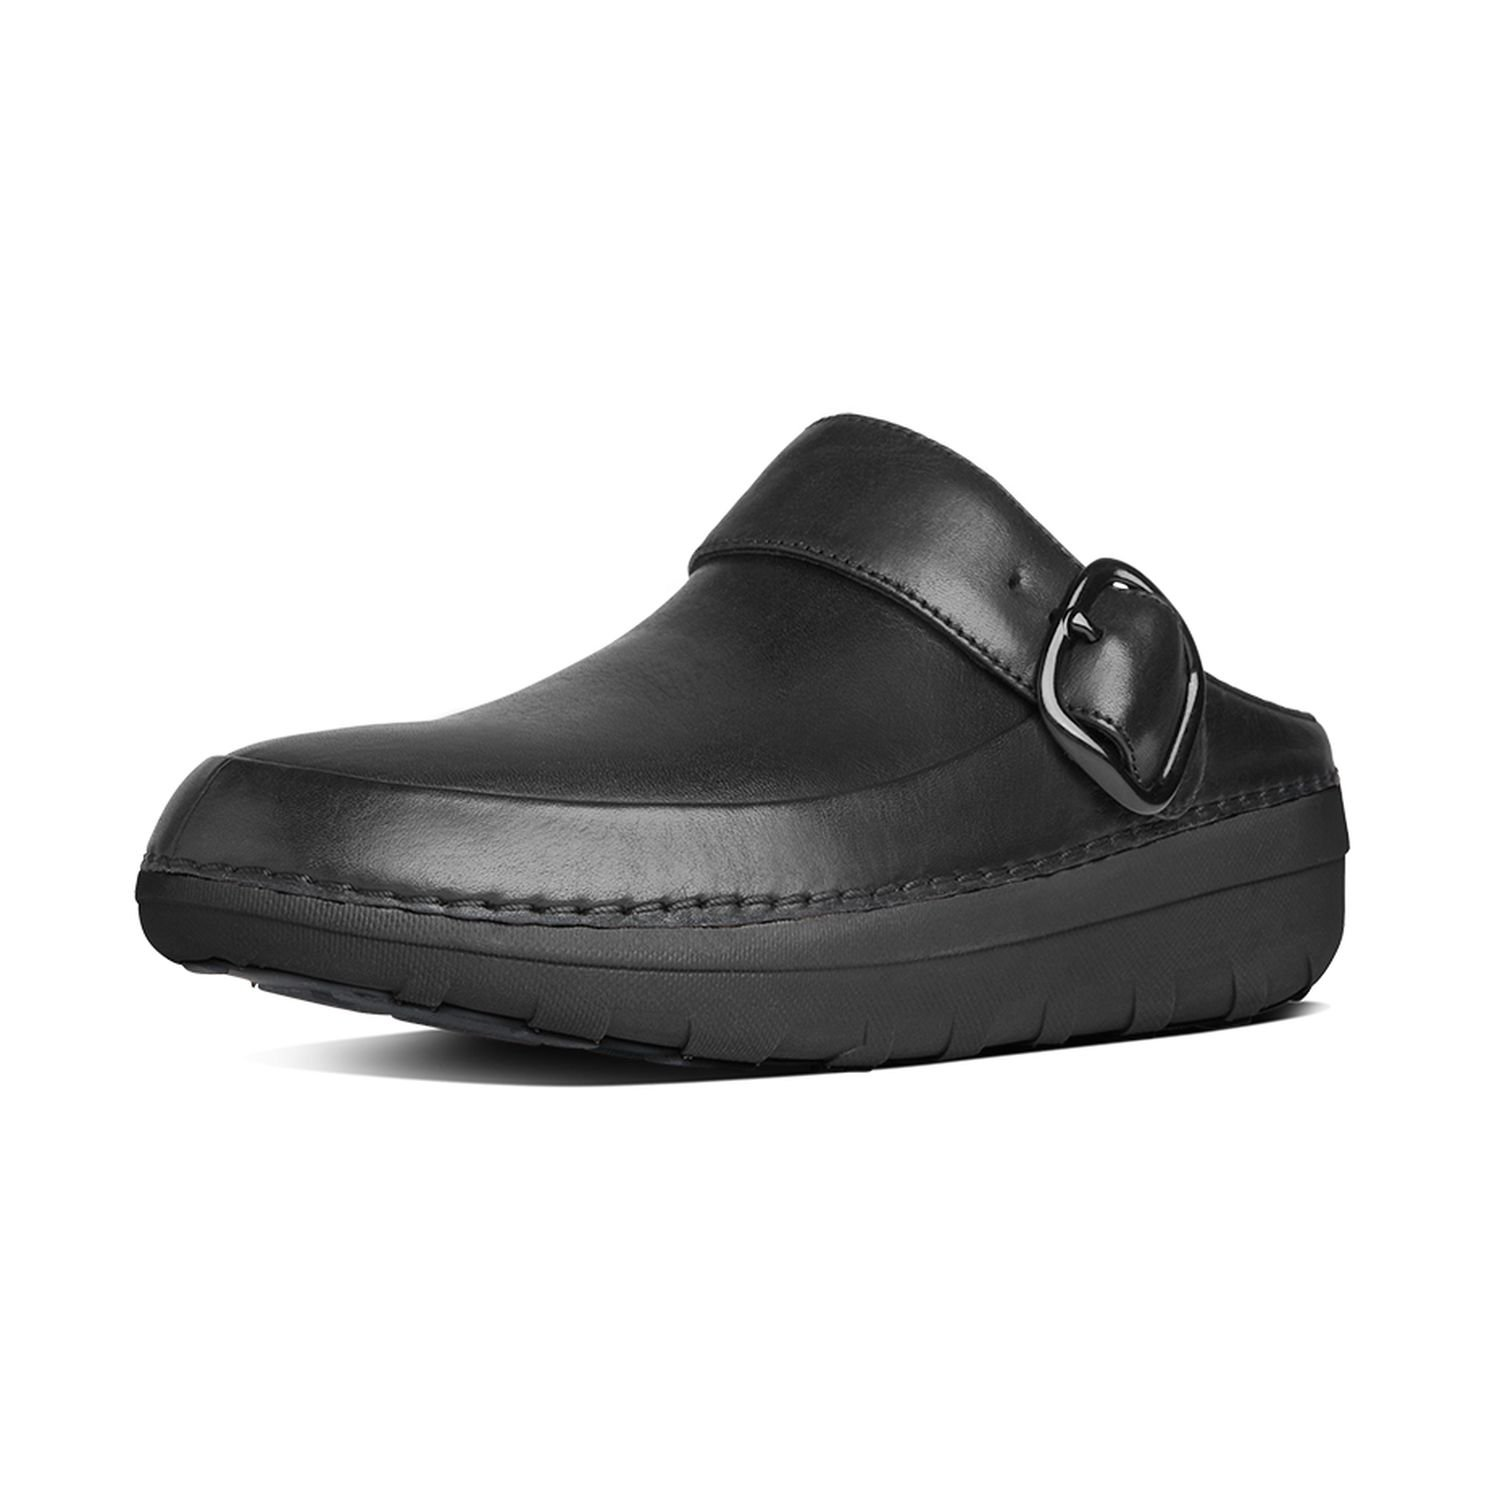 FitFlop Women's Gogh Pro Superlight Leather Clogs Black 10 & Sunscreen by FitFlop